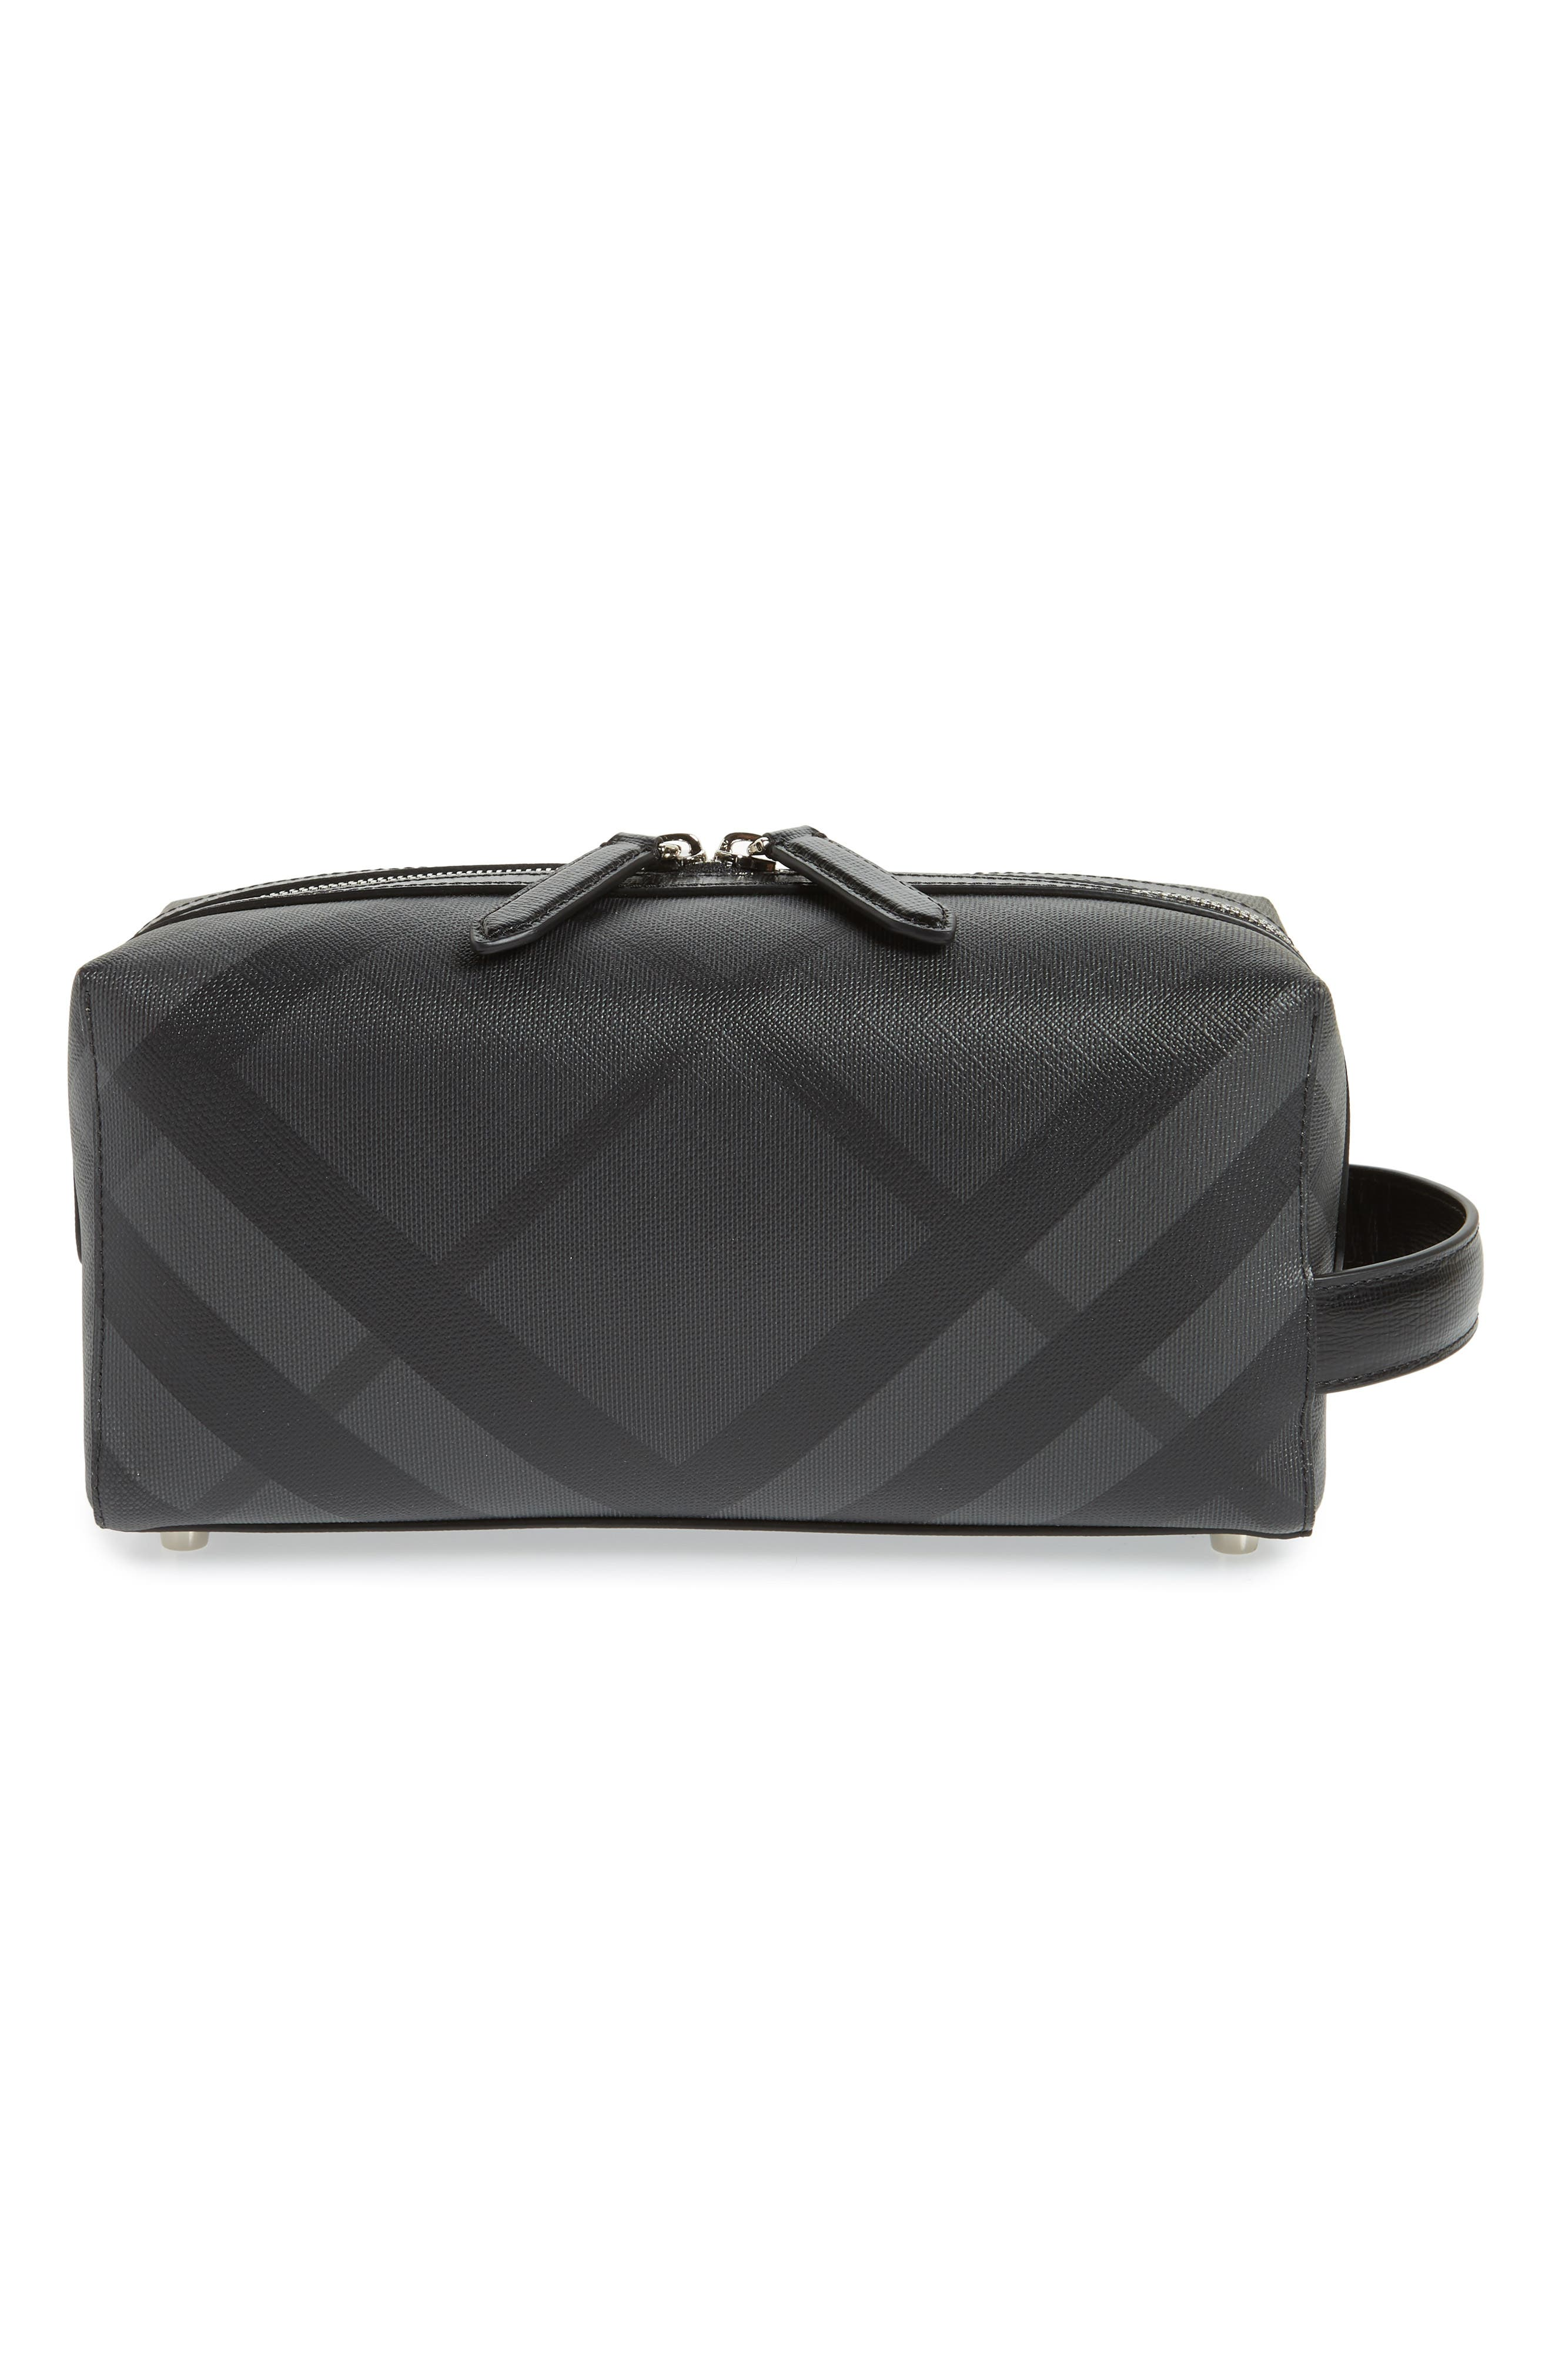 Burberry London Check Dopp Kit